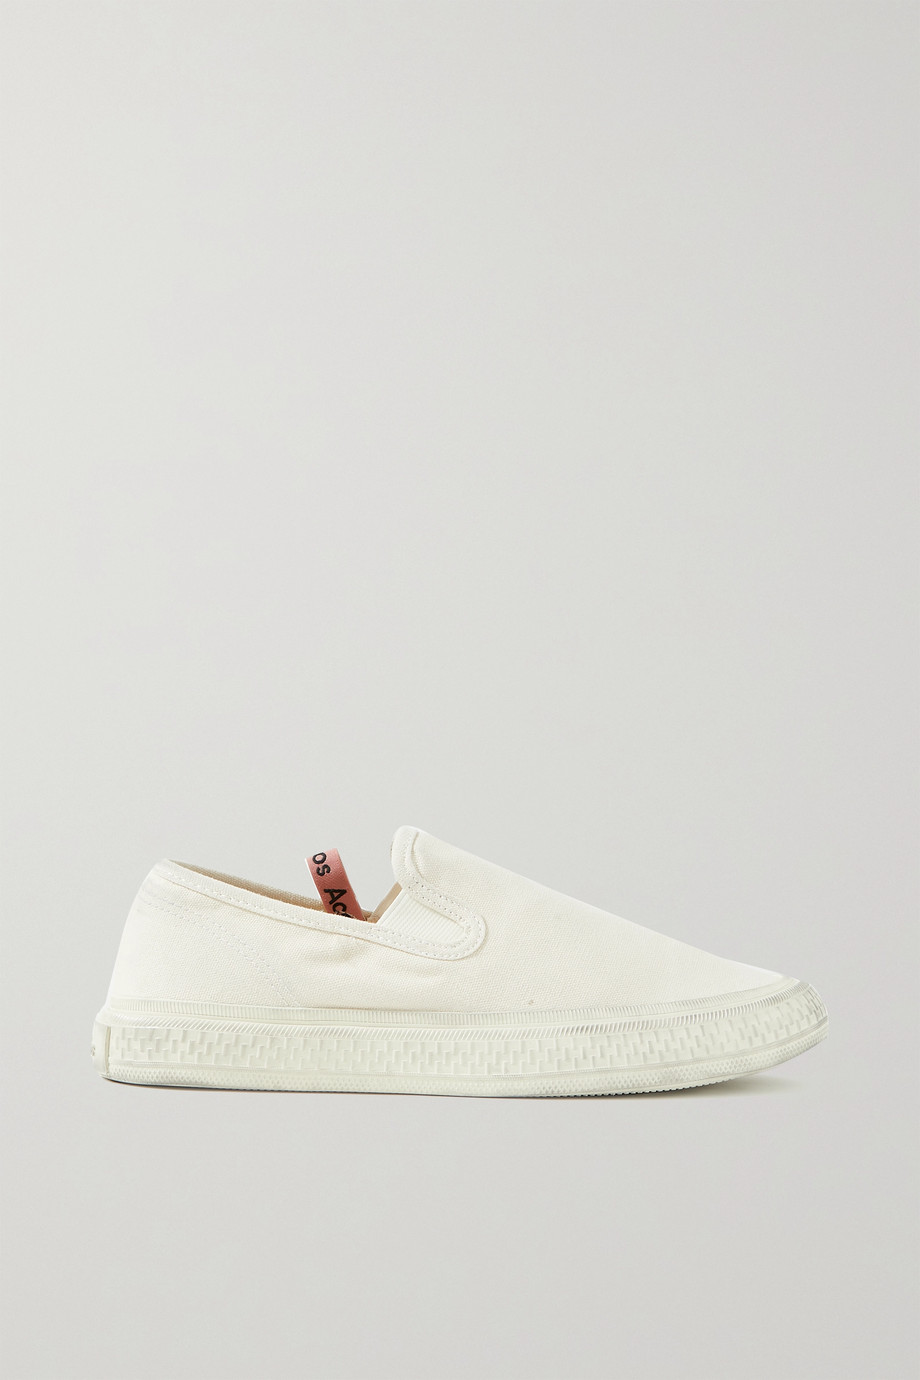 ACNE STUDIOS Distressed canvas slip-on sneakers